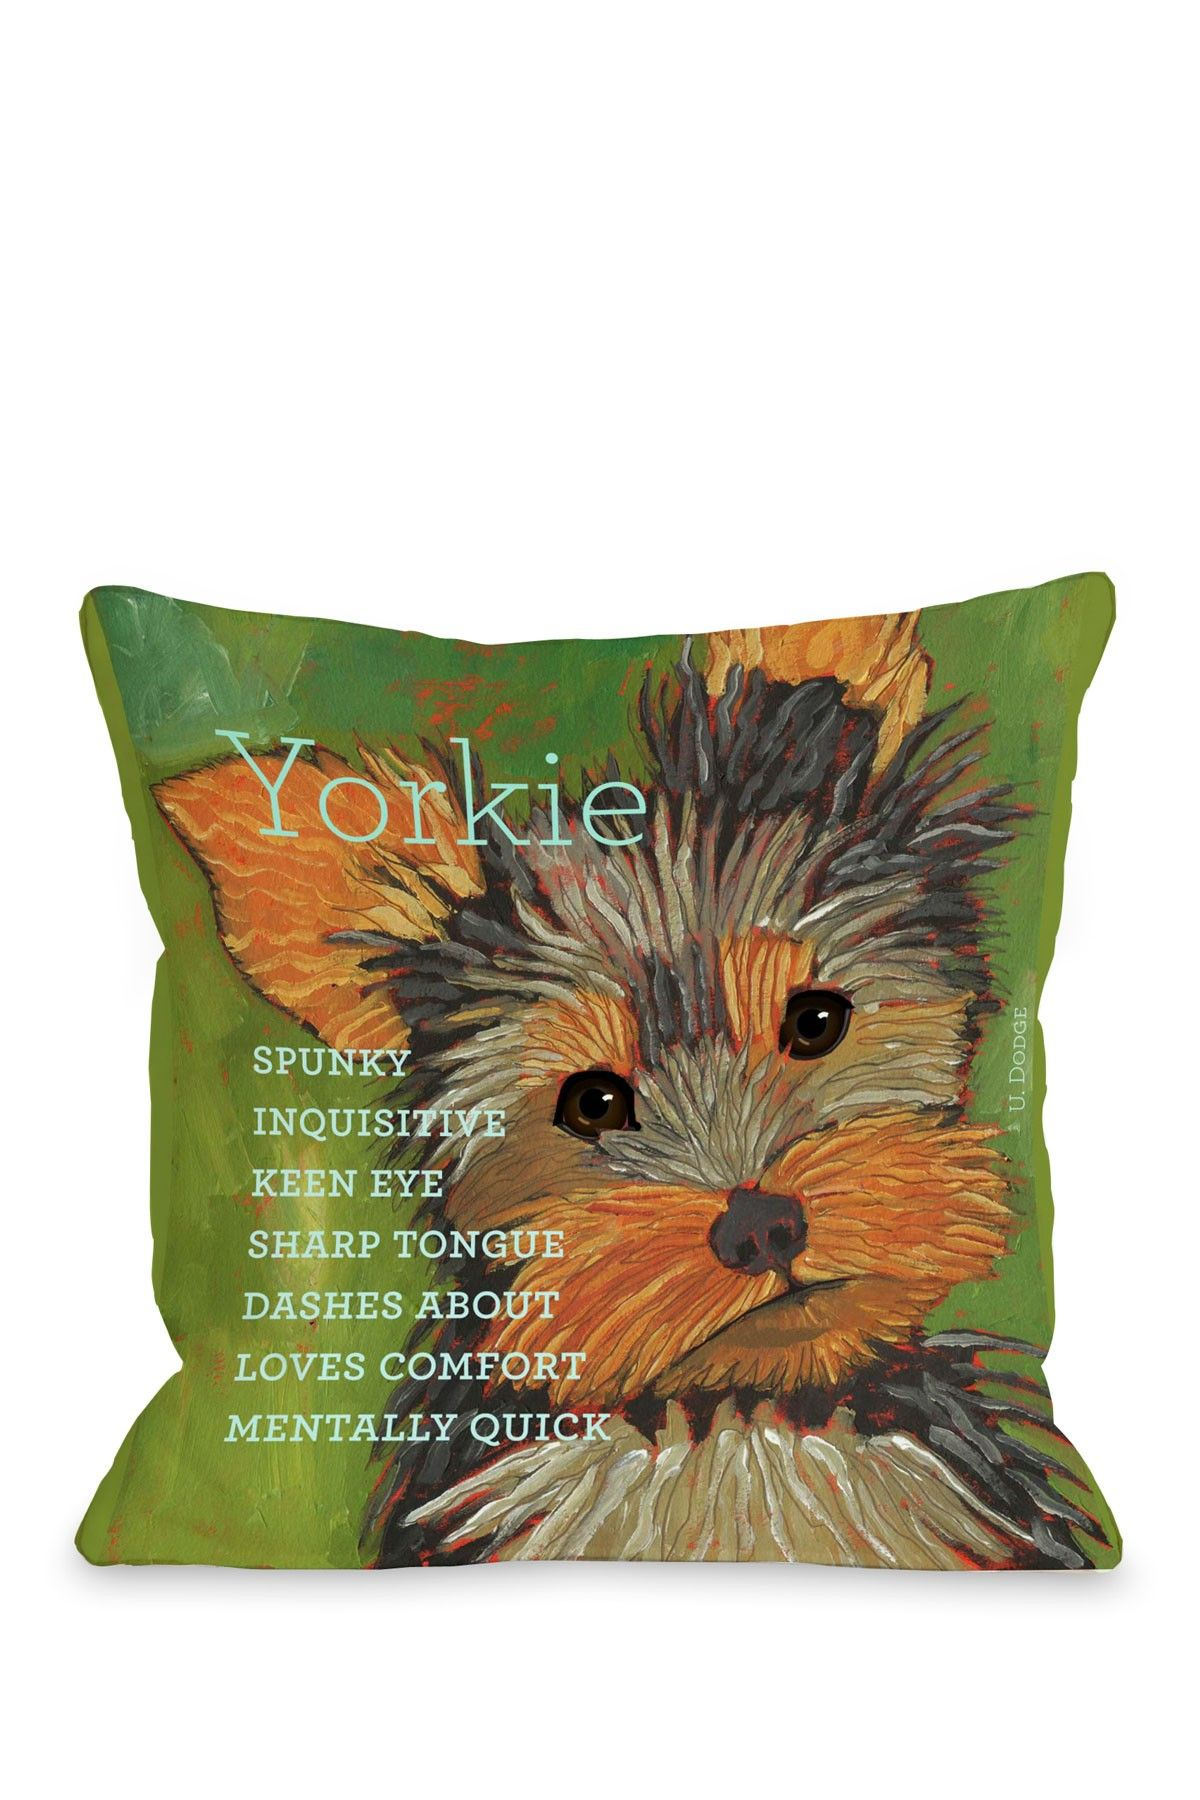 Pin By Levato On Products I Find Interesting Yorkshire Terrier Puppies Yorkshire Terrier Yorkie